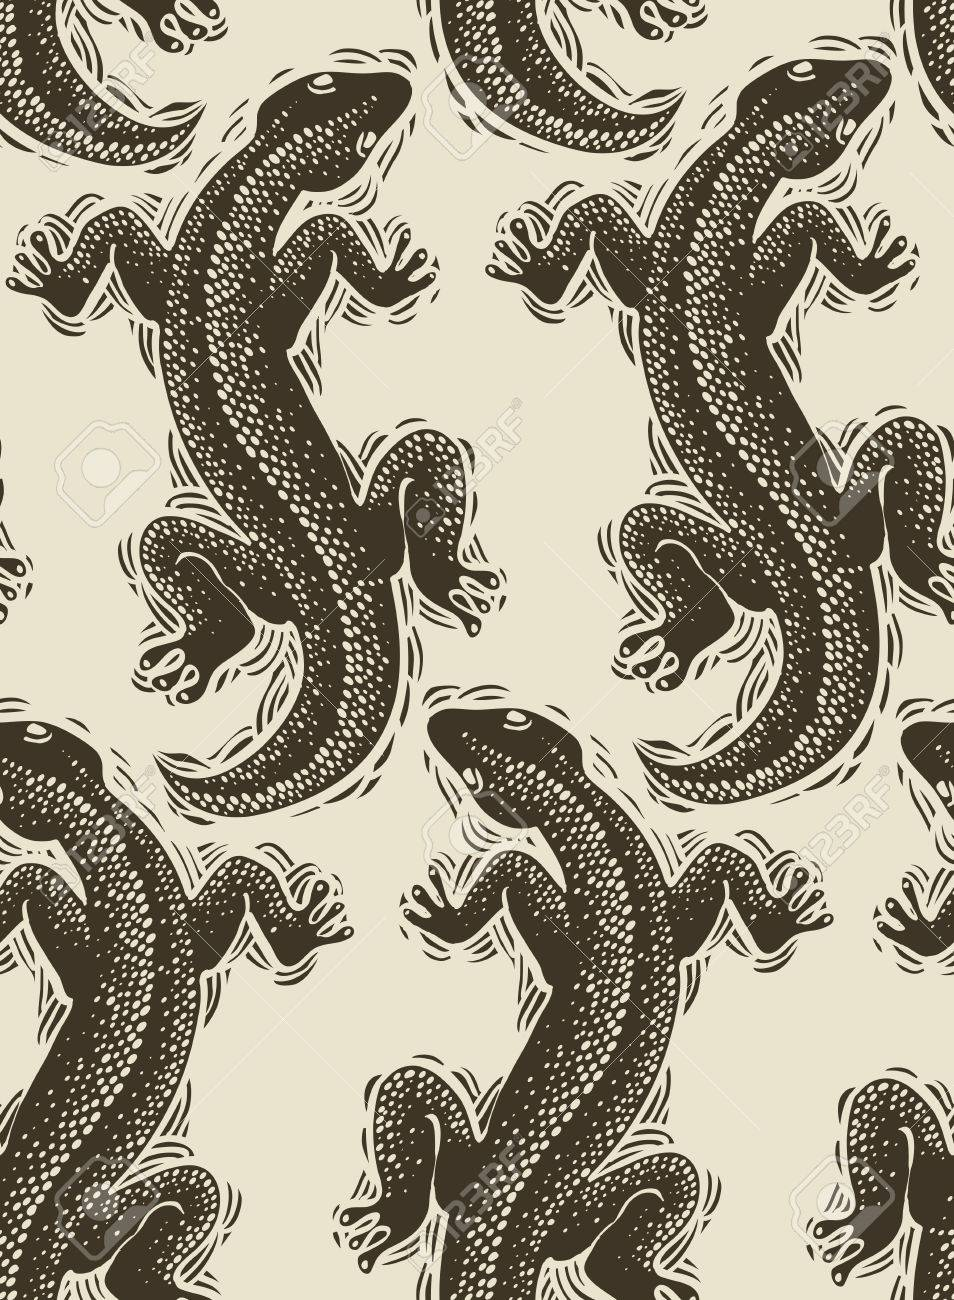 Vector Lizards Wrapping Paper Seamless Pattern With Reptiles 954x1300